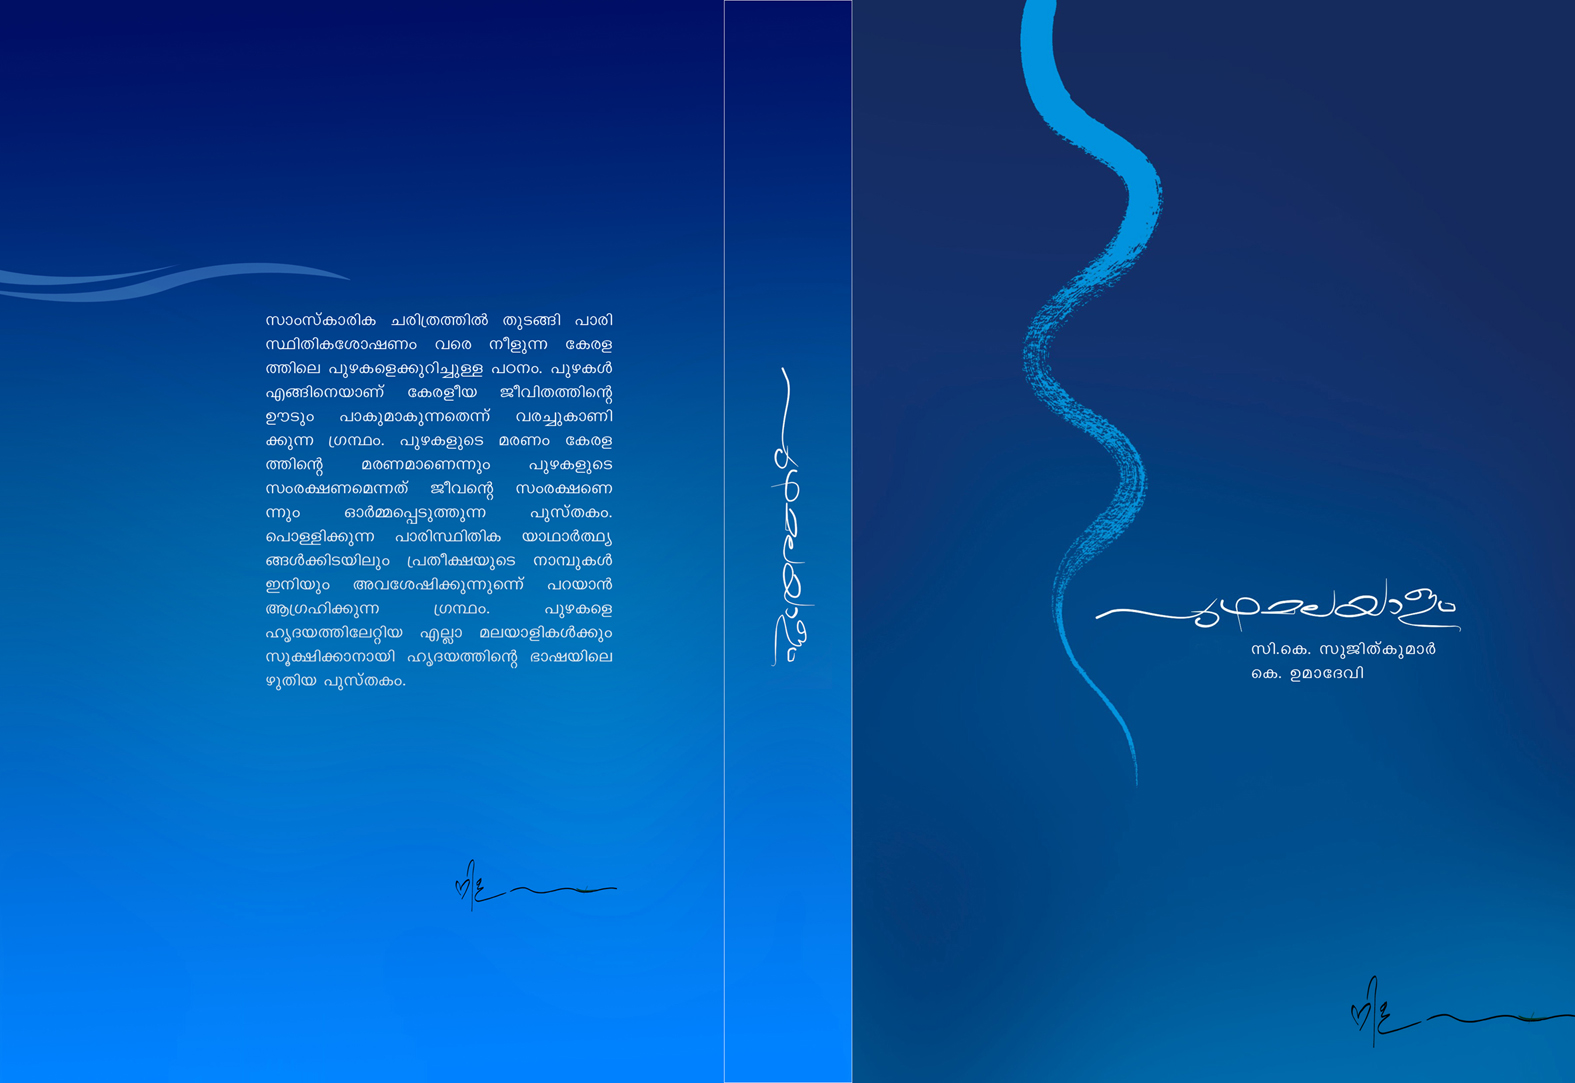 nila foundation suggestions invited for cover design of the book the initiatives to build up a participatory process in publishing the book puzha malayalam we are inviting public opinion to design the cover page